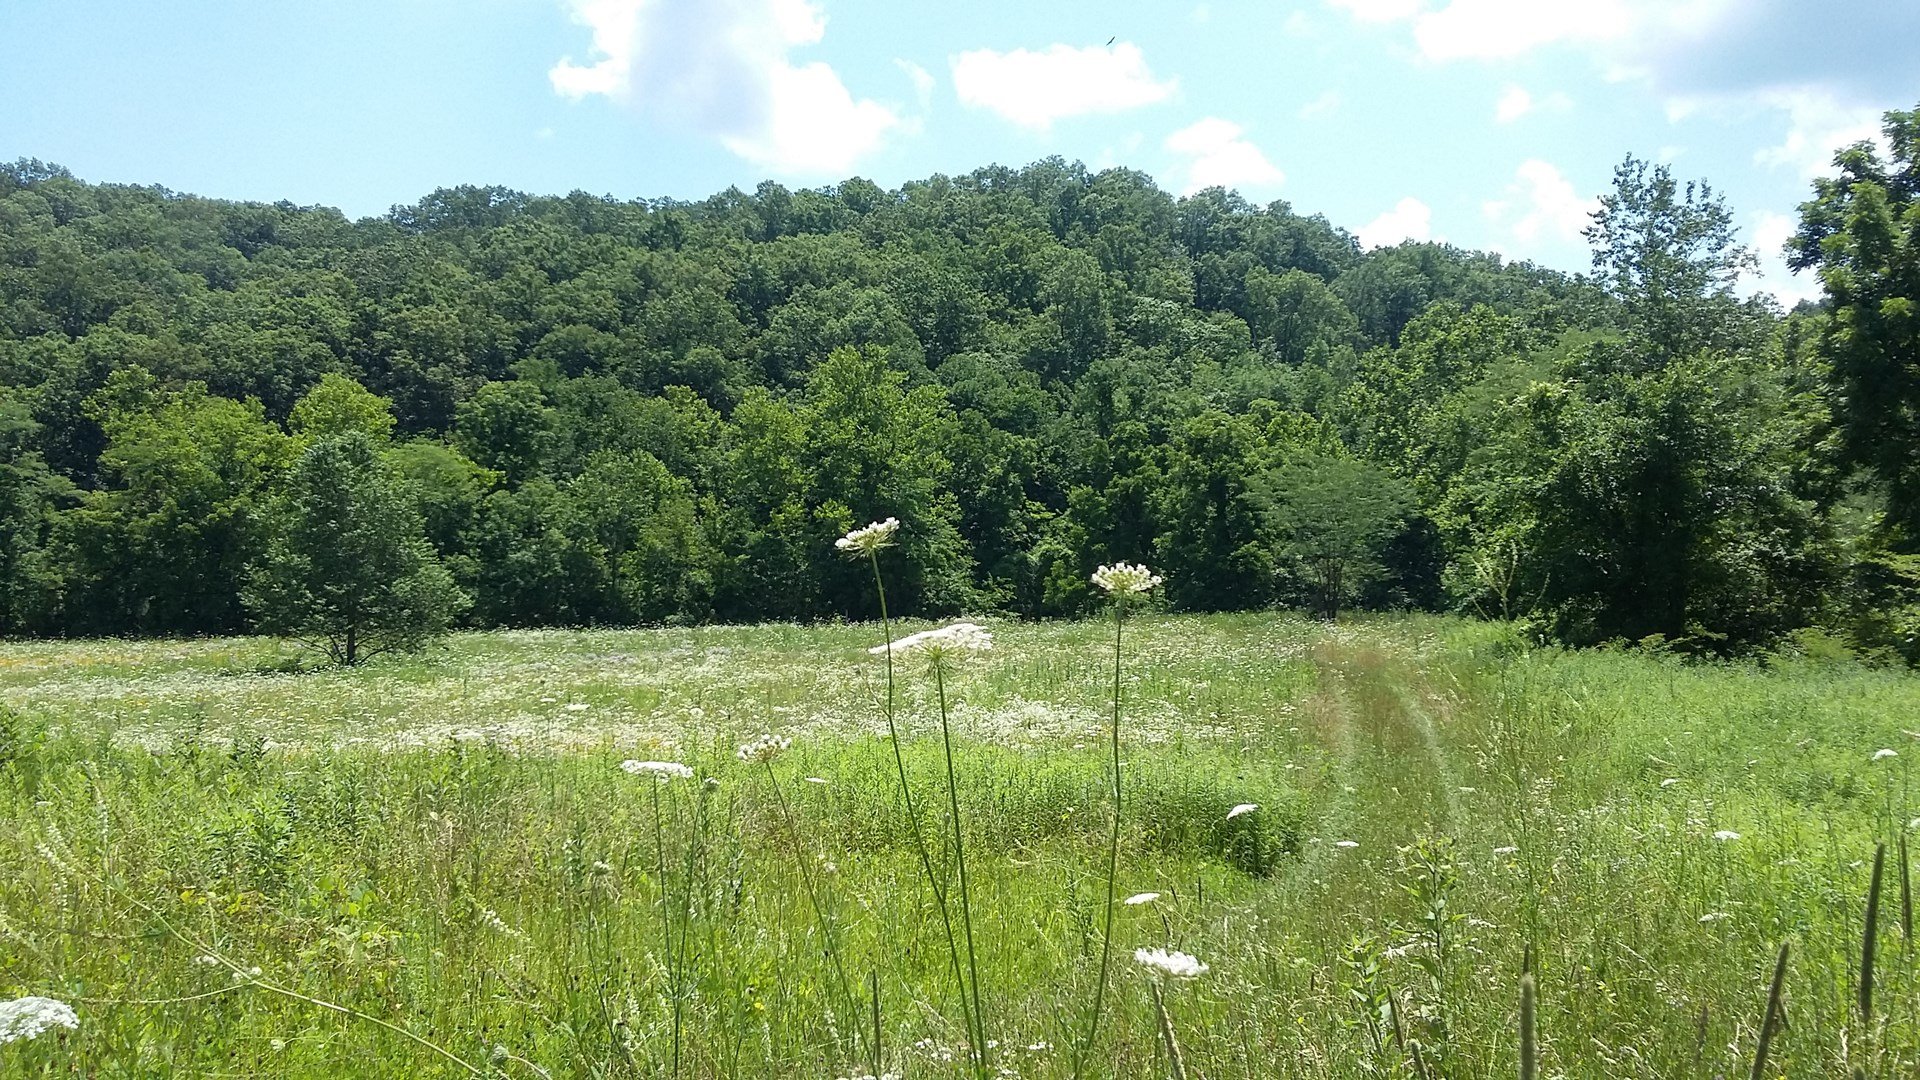 Land-Hunting-Camping-Building Site In Missouri-81 Acres